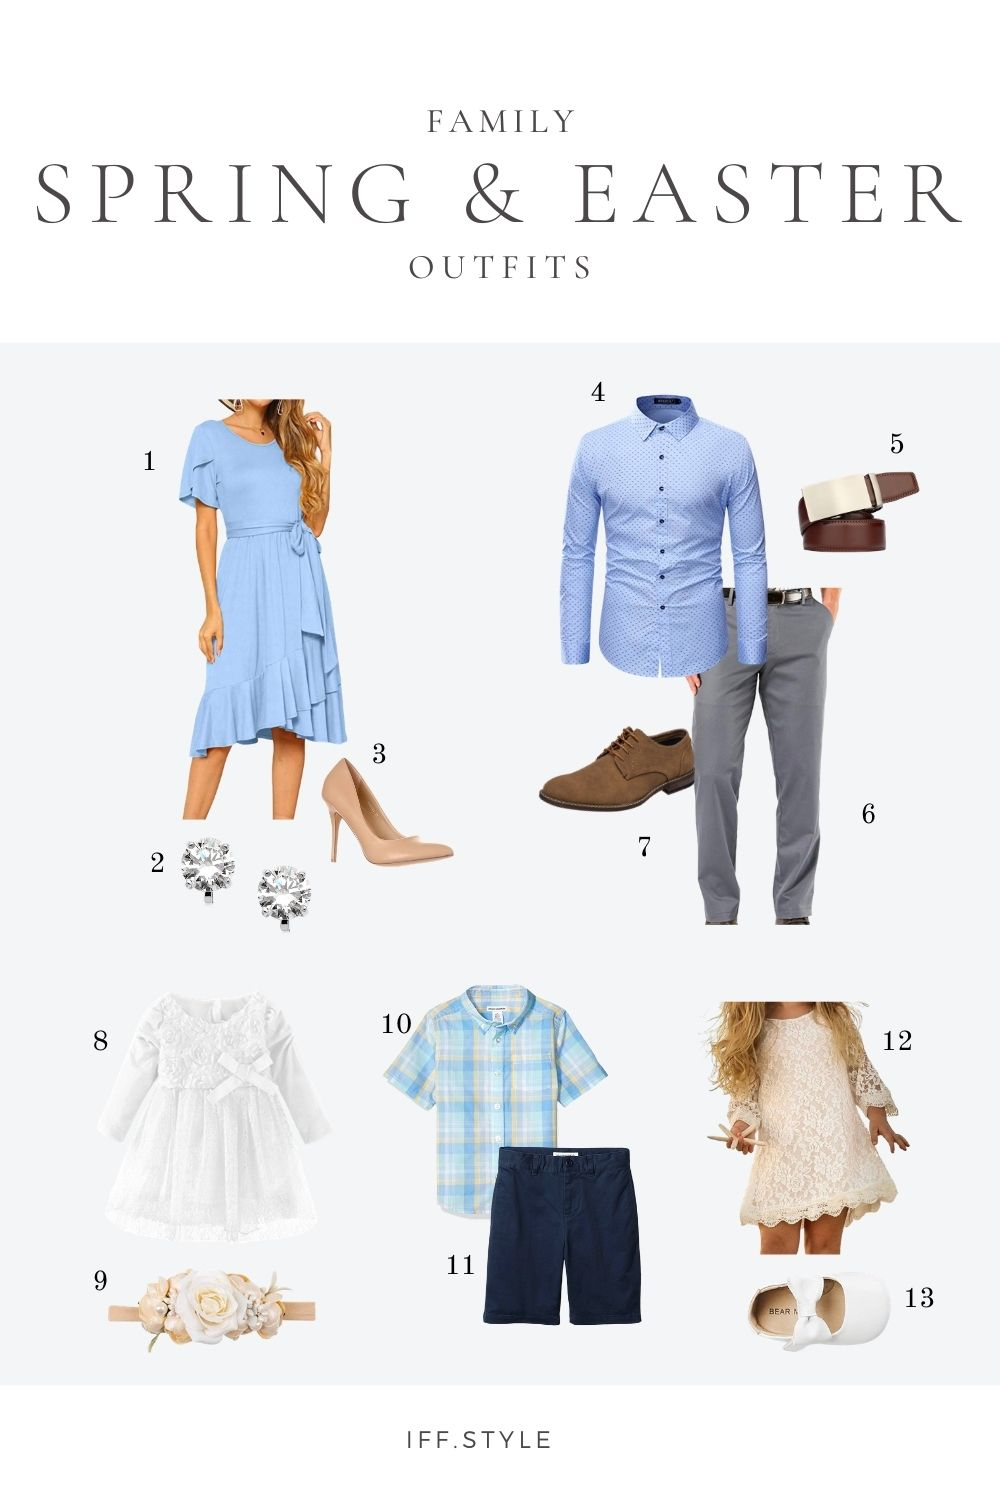 Pinterest Pin-Easter and Spring Family Outfit Ideas Blue